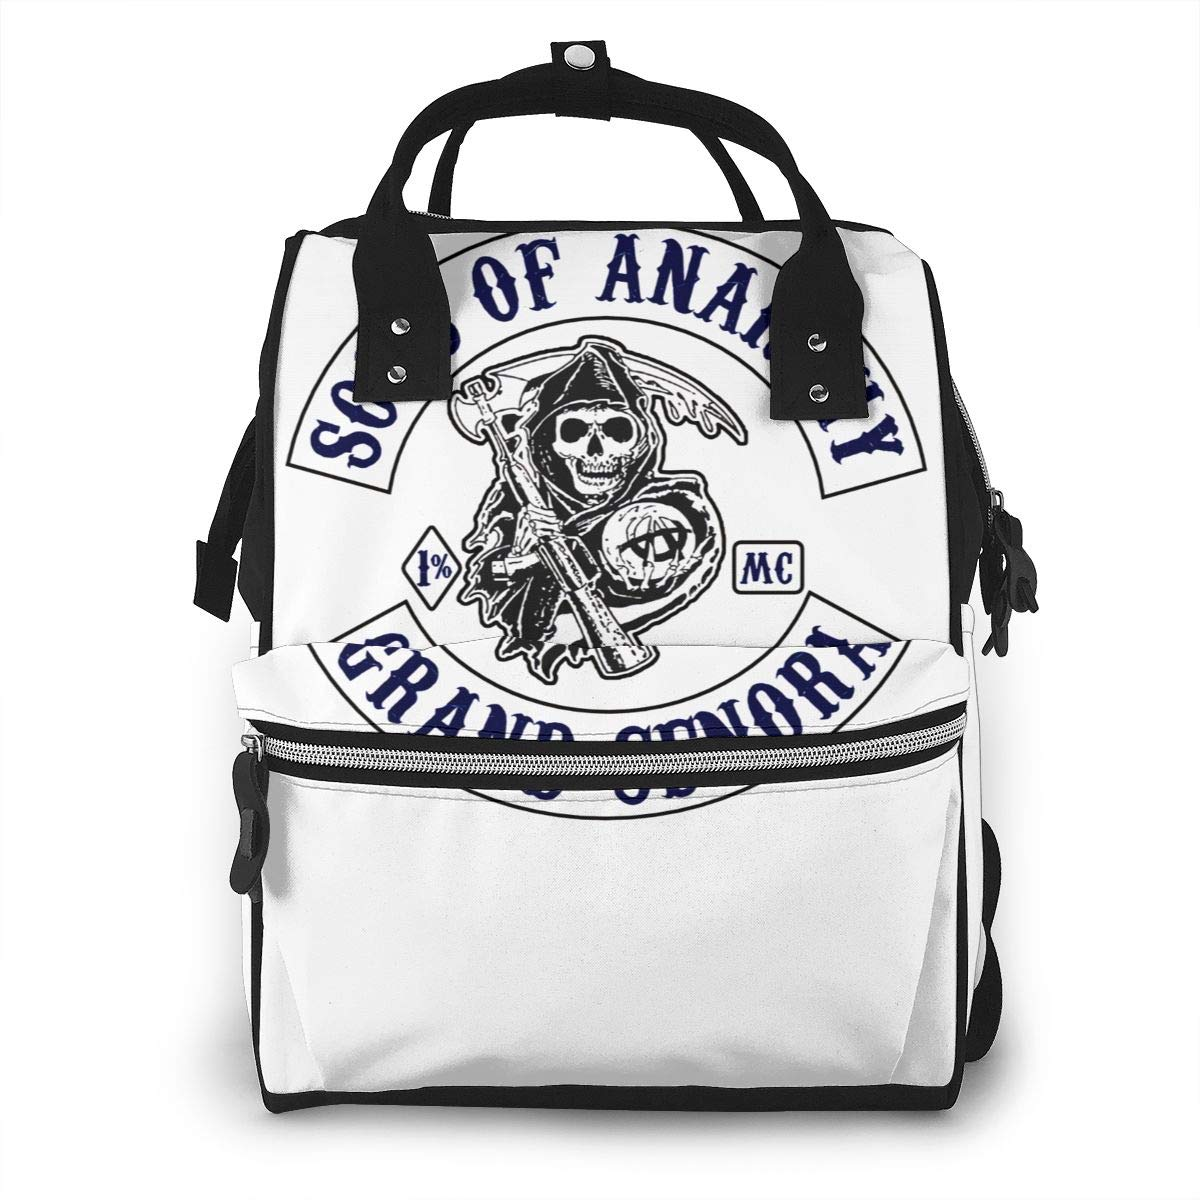 Sons of Anarchy Diaper Bag Multi-Function Waterproof Travel Backpack Nappy Bags for Baby Care Mummy Backpack